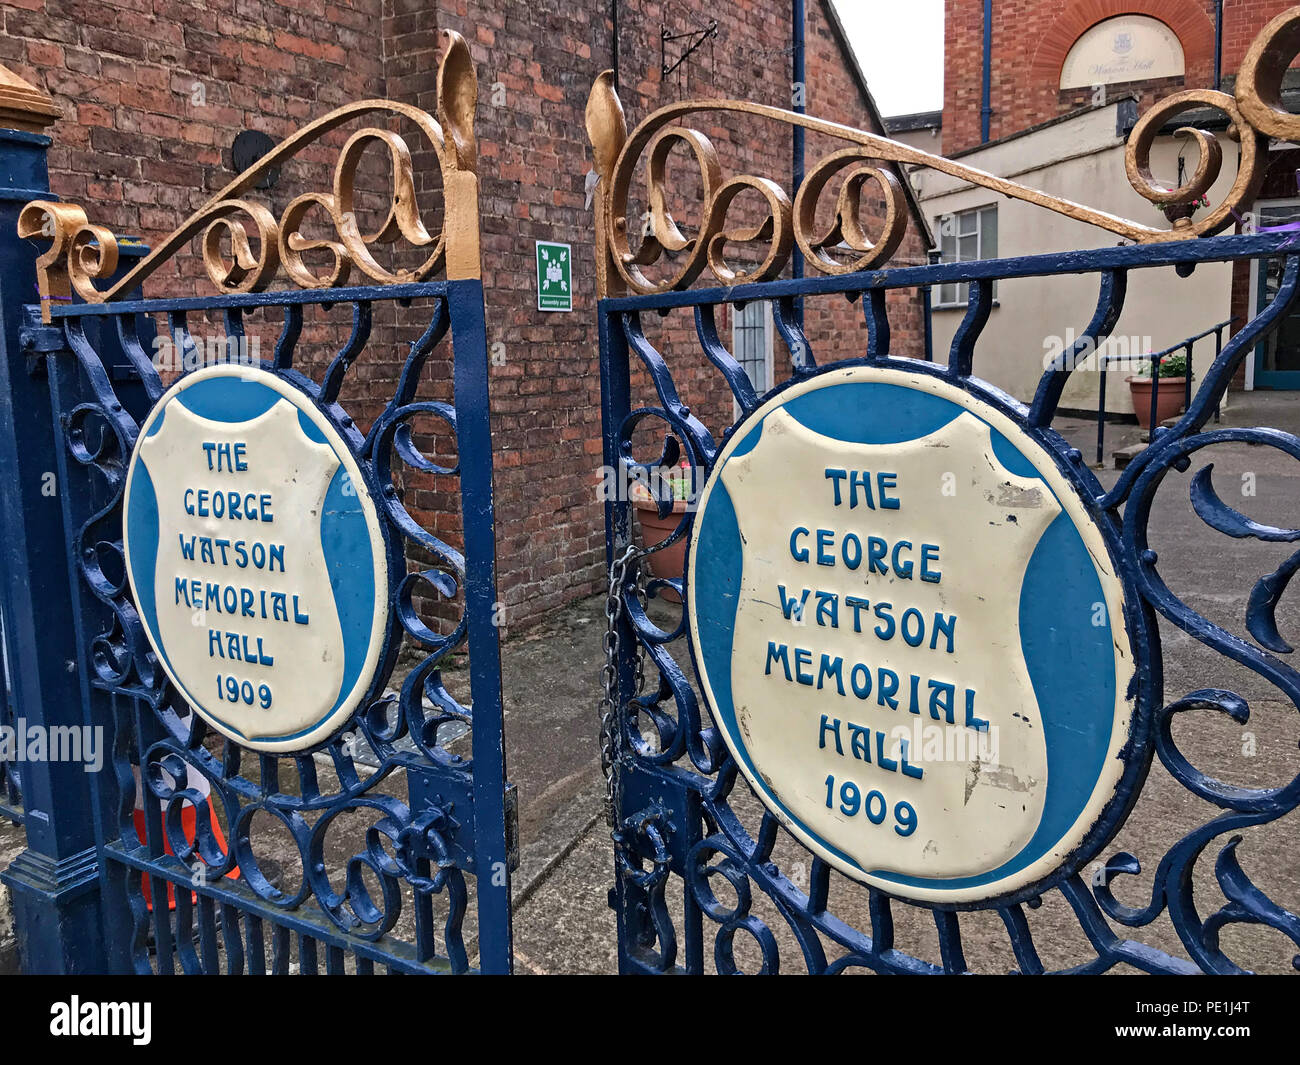 The George Watson memorial Hall 1909, 64 Barton St, Tewkesbury GL20, UK - Stock Image